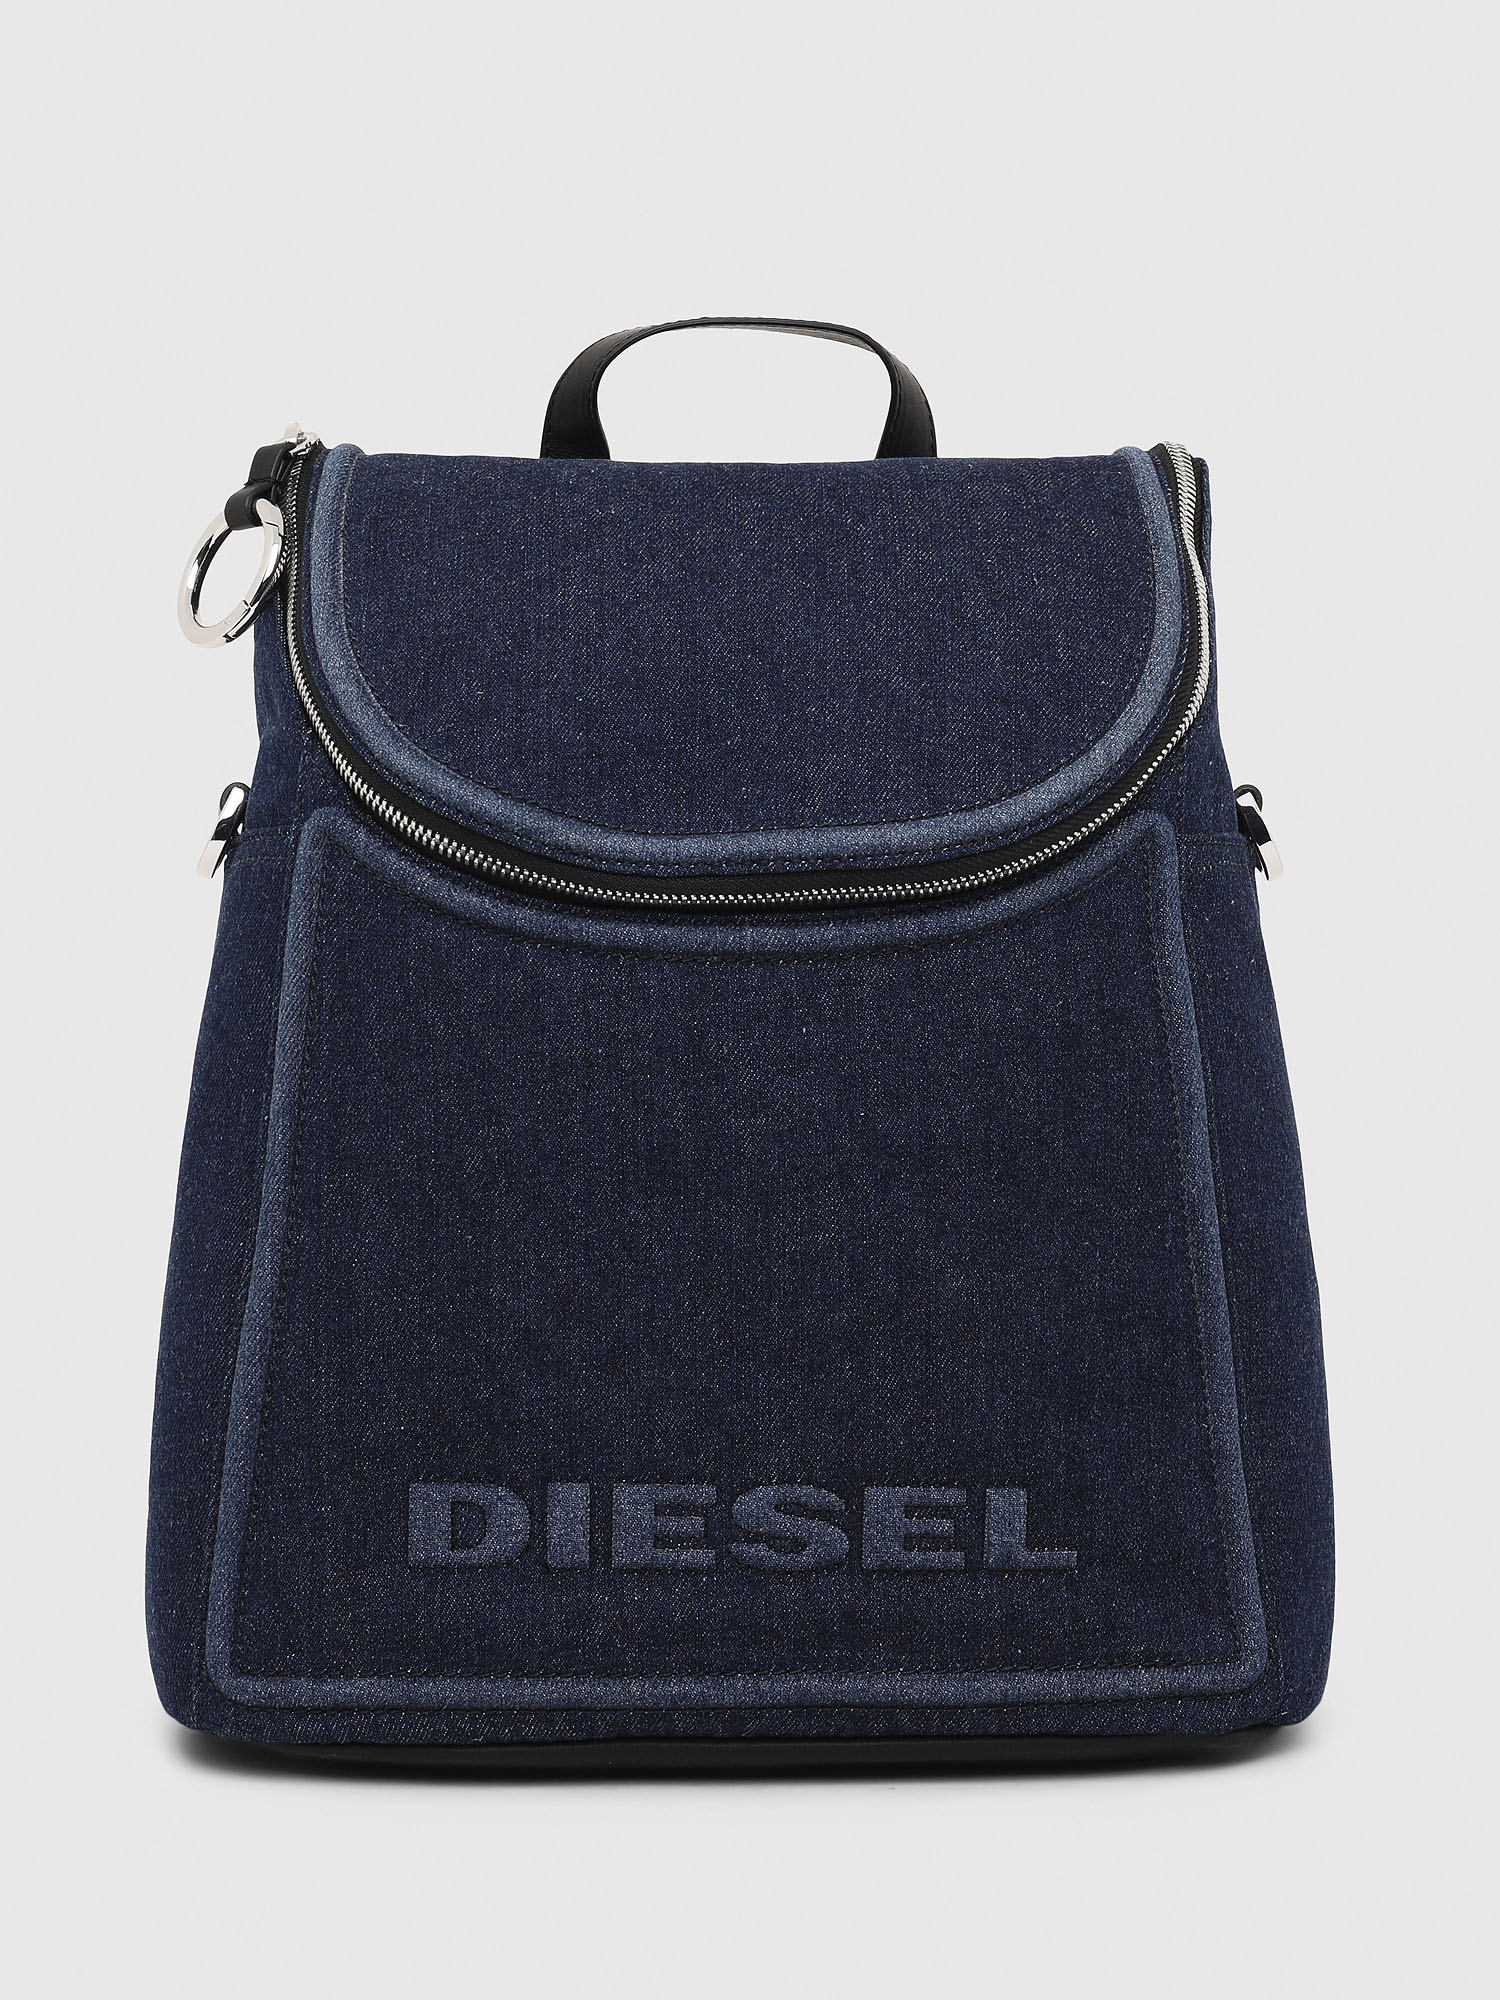 Diesel Backpacks P2085 - Blue